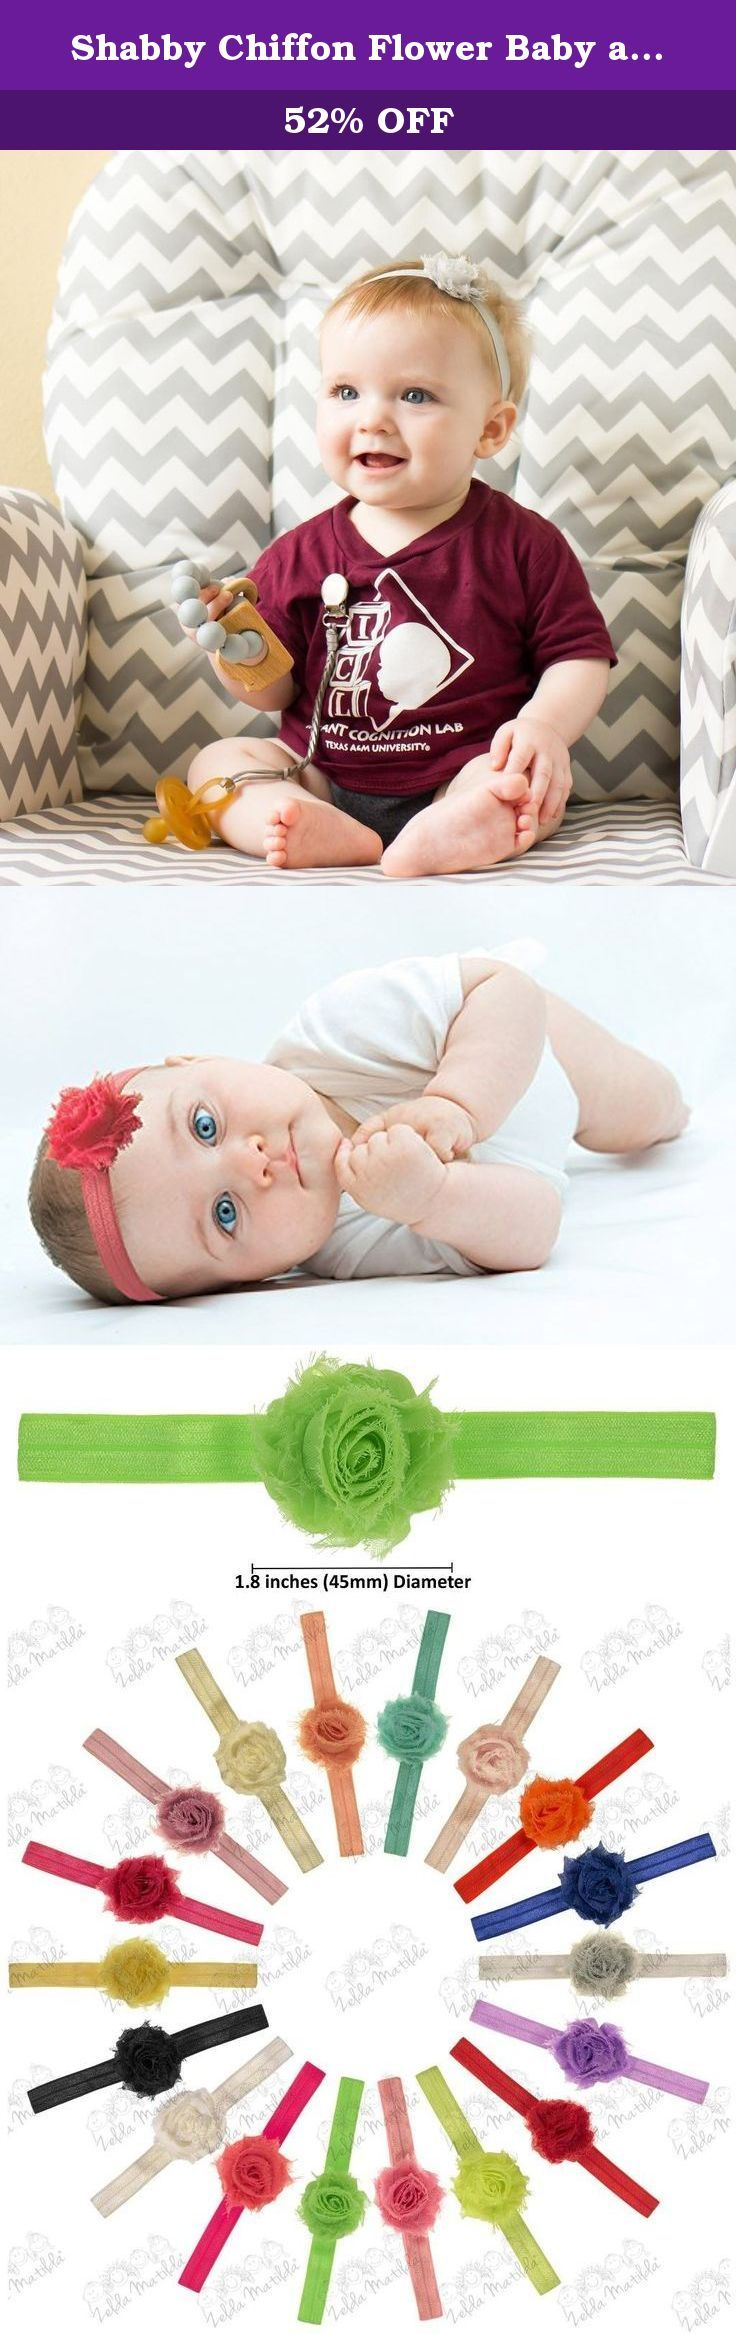 Shabby Chiffon Flower Baby and Newborn Girls Headband Set - 18 Pack - by ZELDA MATILDA - Gorgeous Rosettes on Super Soft and Stretchy Headbands for Newborn and Baby Girls - Boutique quality!. 18 Piece Shabby Chiffon Flower Newborn and Baby Headband Set by ZELDA MATILDA. Gorgeous Soft Flowers On Stretchy Headbands for Newborn and Baby Girls. Are you sick of wasting money on low quality accessories that fall apart or are not well made? Don't you wish there was a way to buy boutique high...